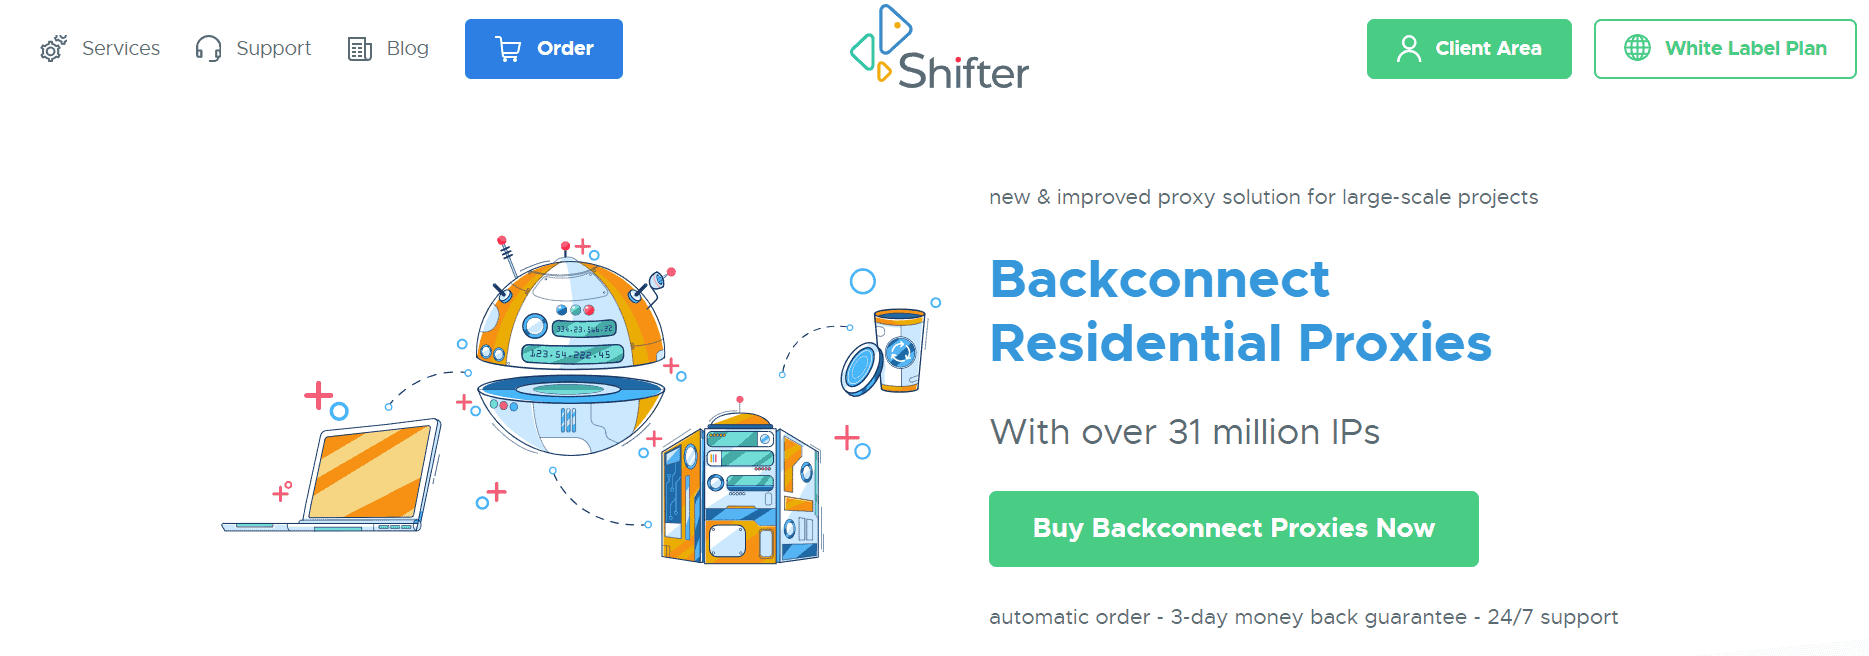 shifter homepage